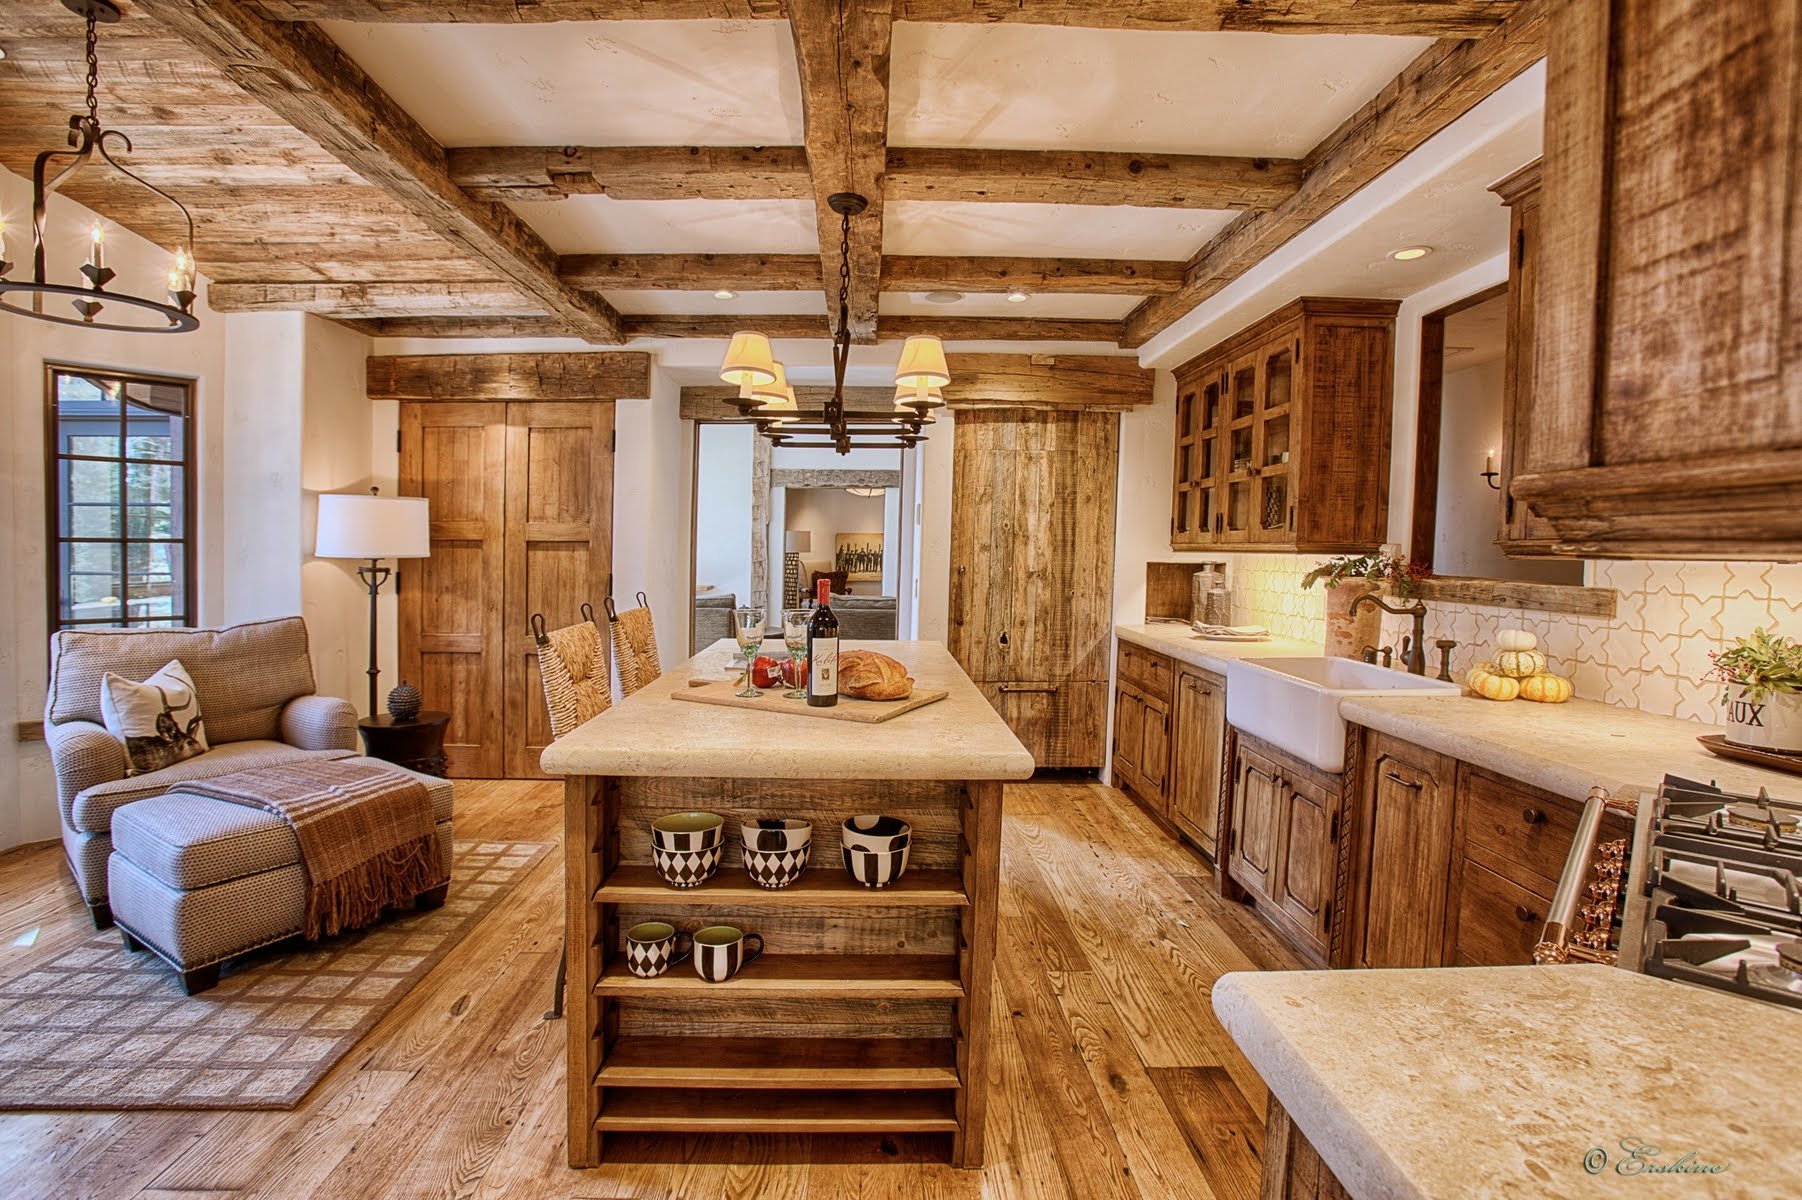 4 Materials For Rustic Kitchen Cabinets - MidCityEast on blue rustic kitchen design, houzz office design, barndominiums design, houzz bathroom design, modern rustic kitchen design, houzz fireplace design, houzz green design, houzz room design, rustic kitchen cabinets design, rustic tuscan kitchen design,